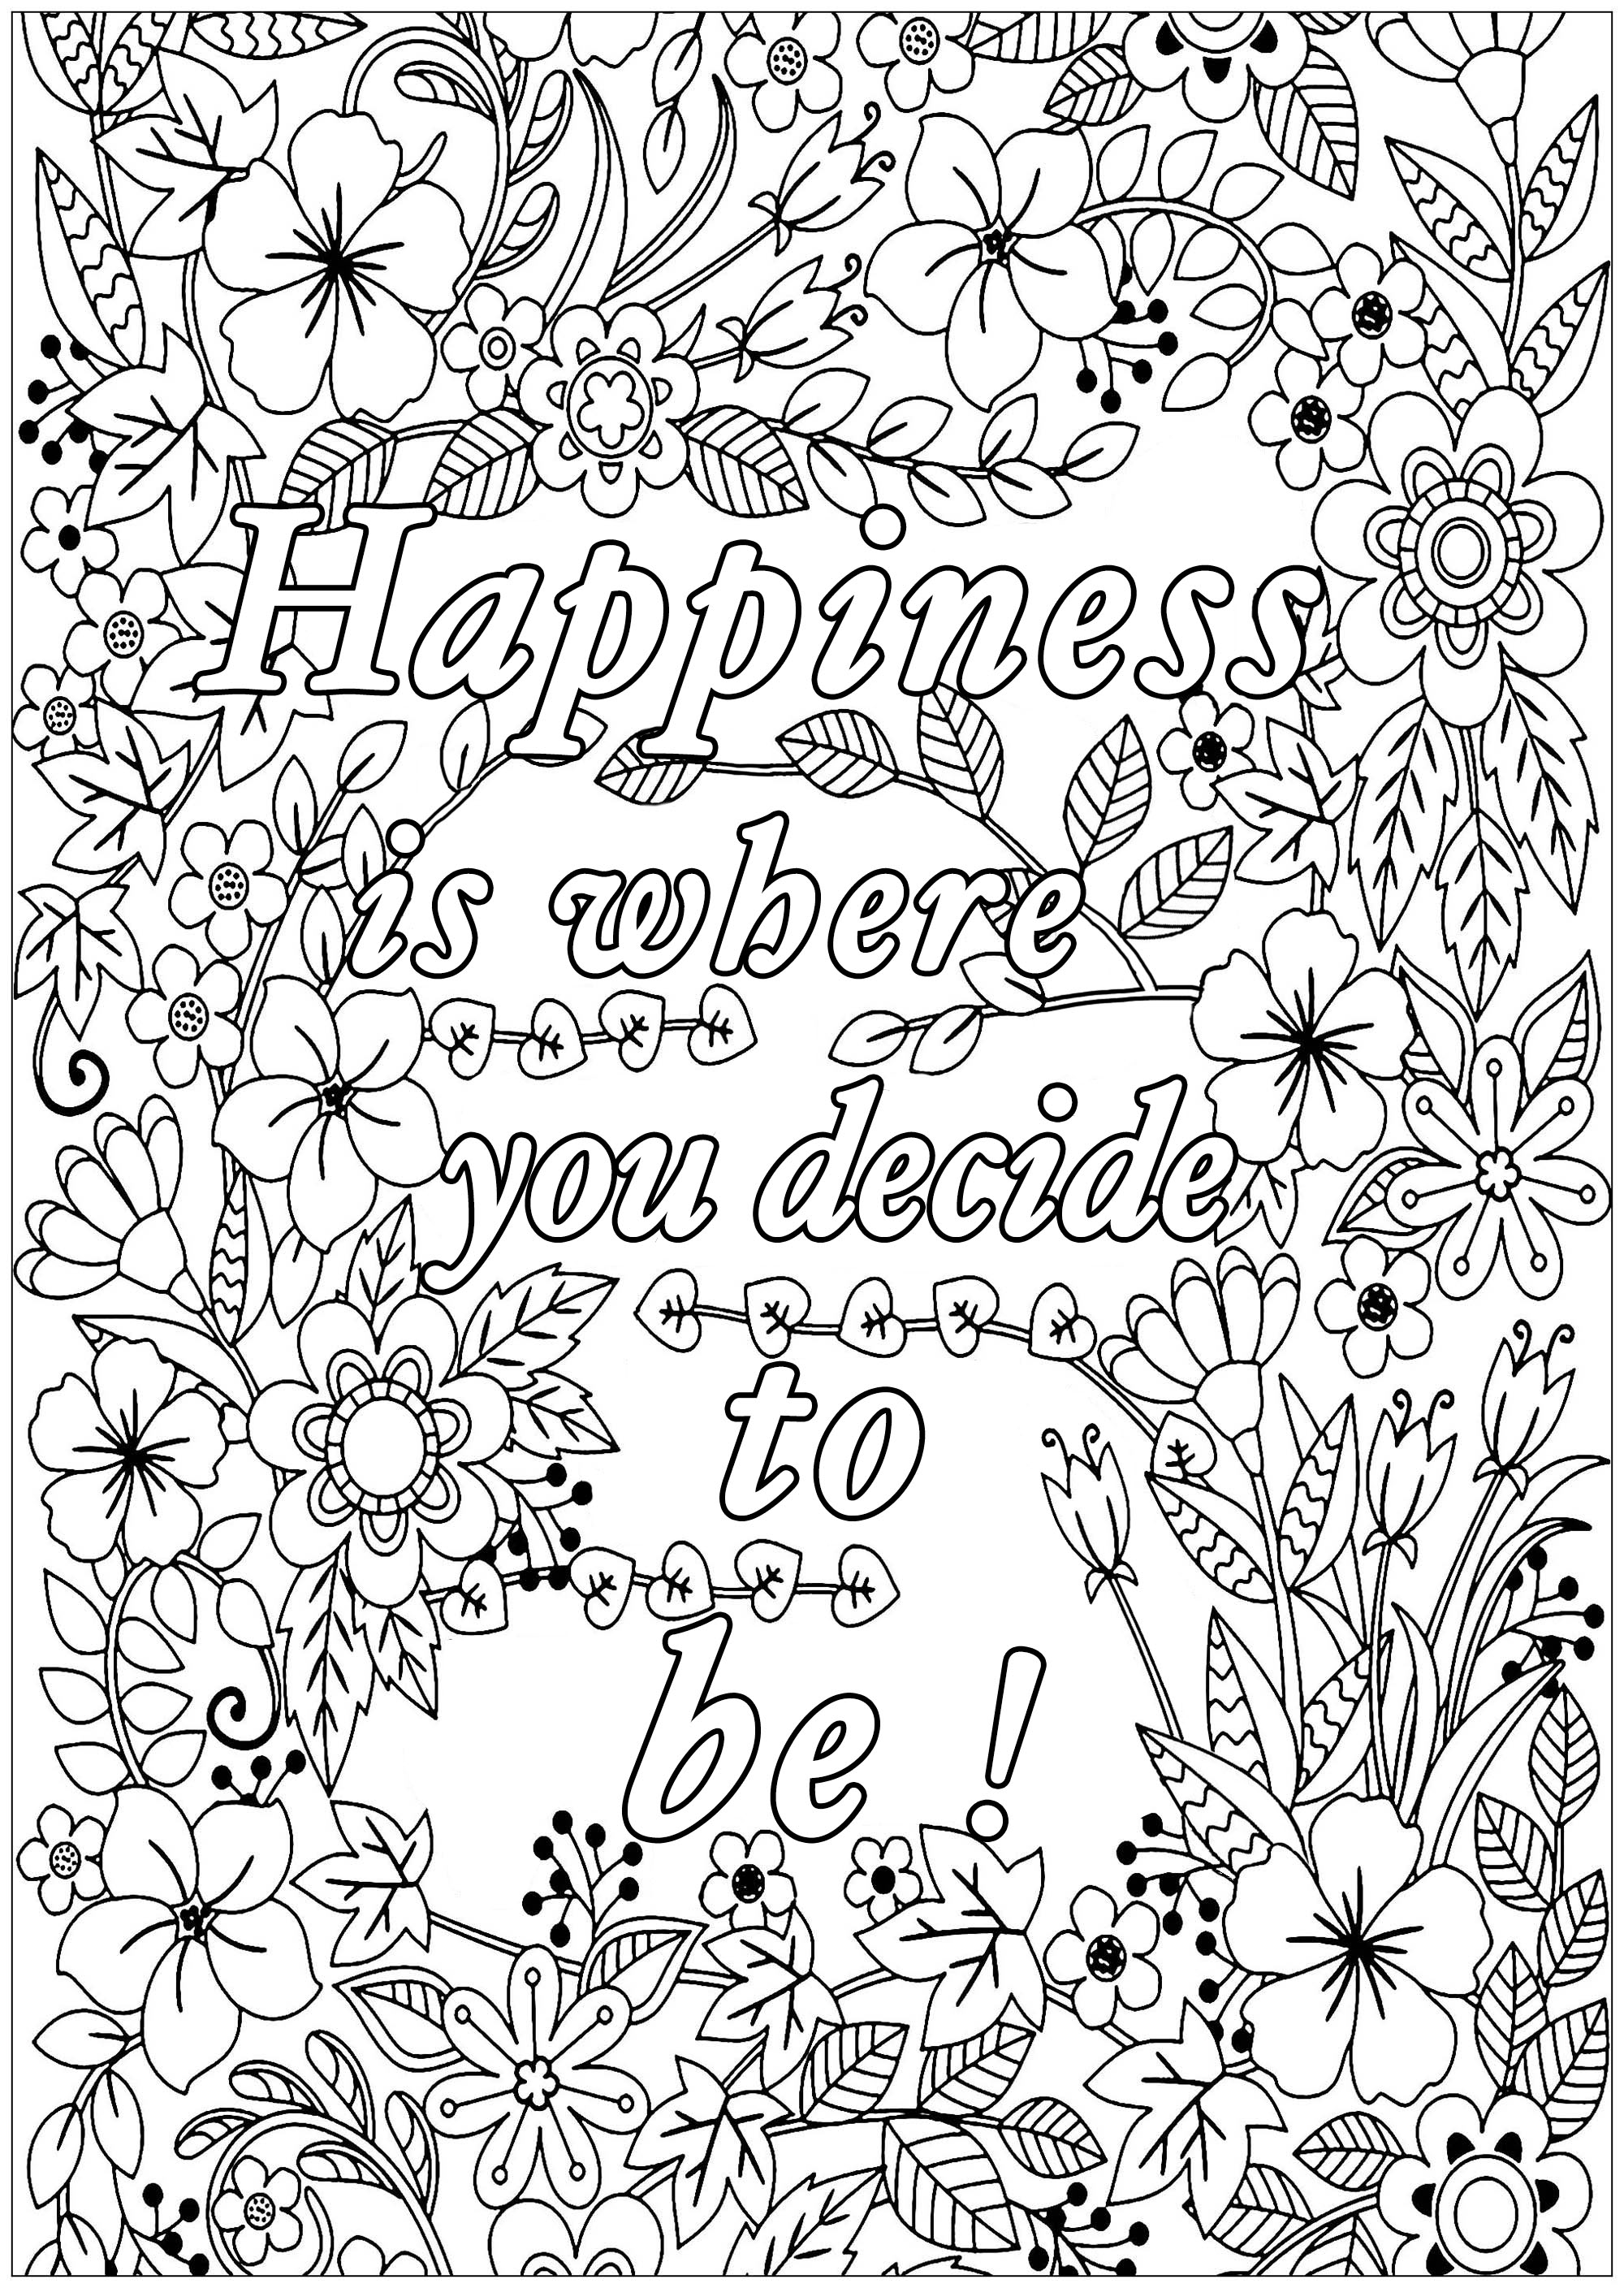 kids quote coloring pages inspirational quotes coloring pages coloring home pages coloring kids quote